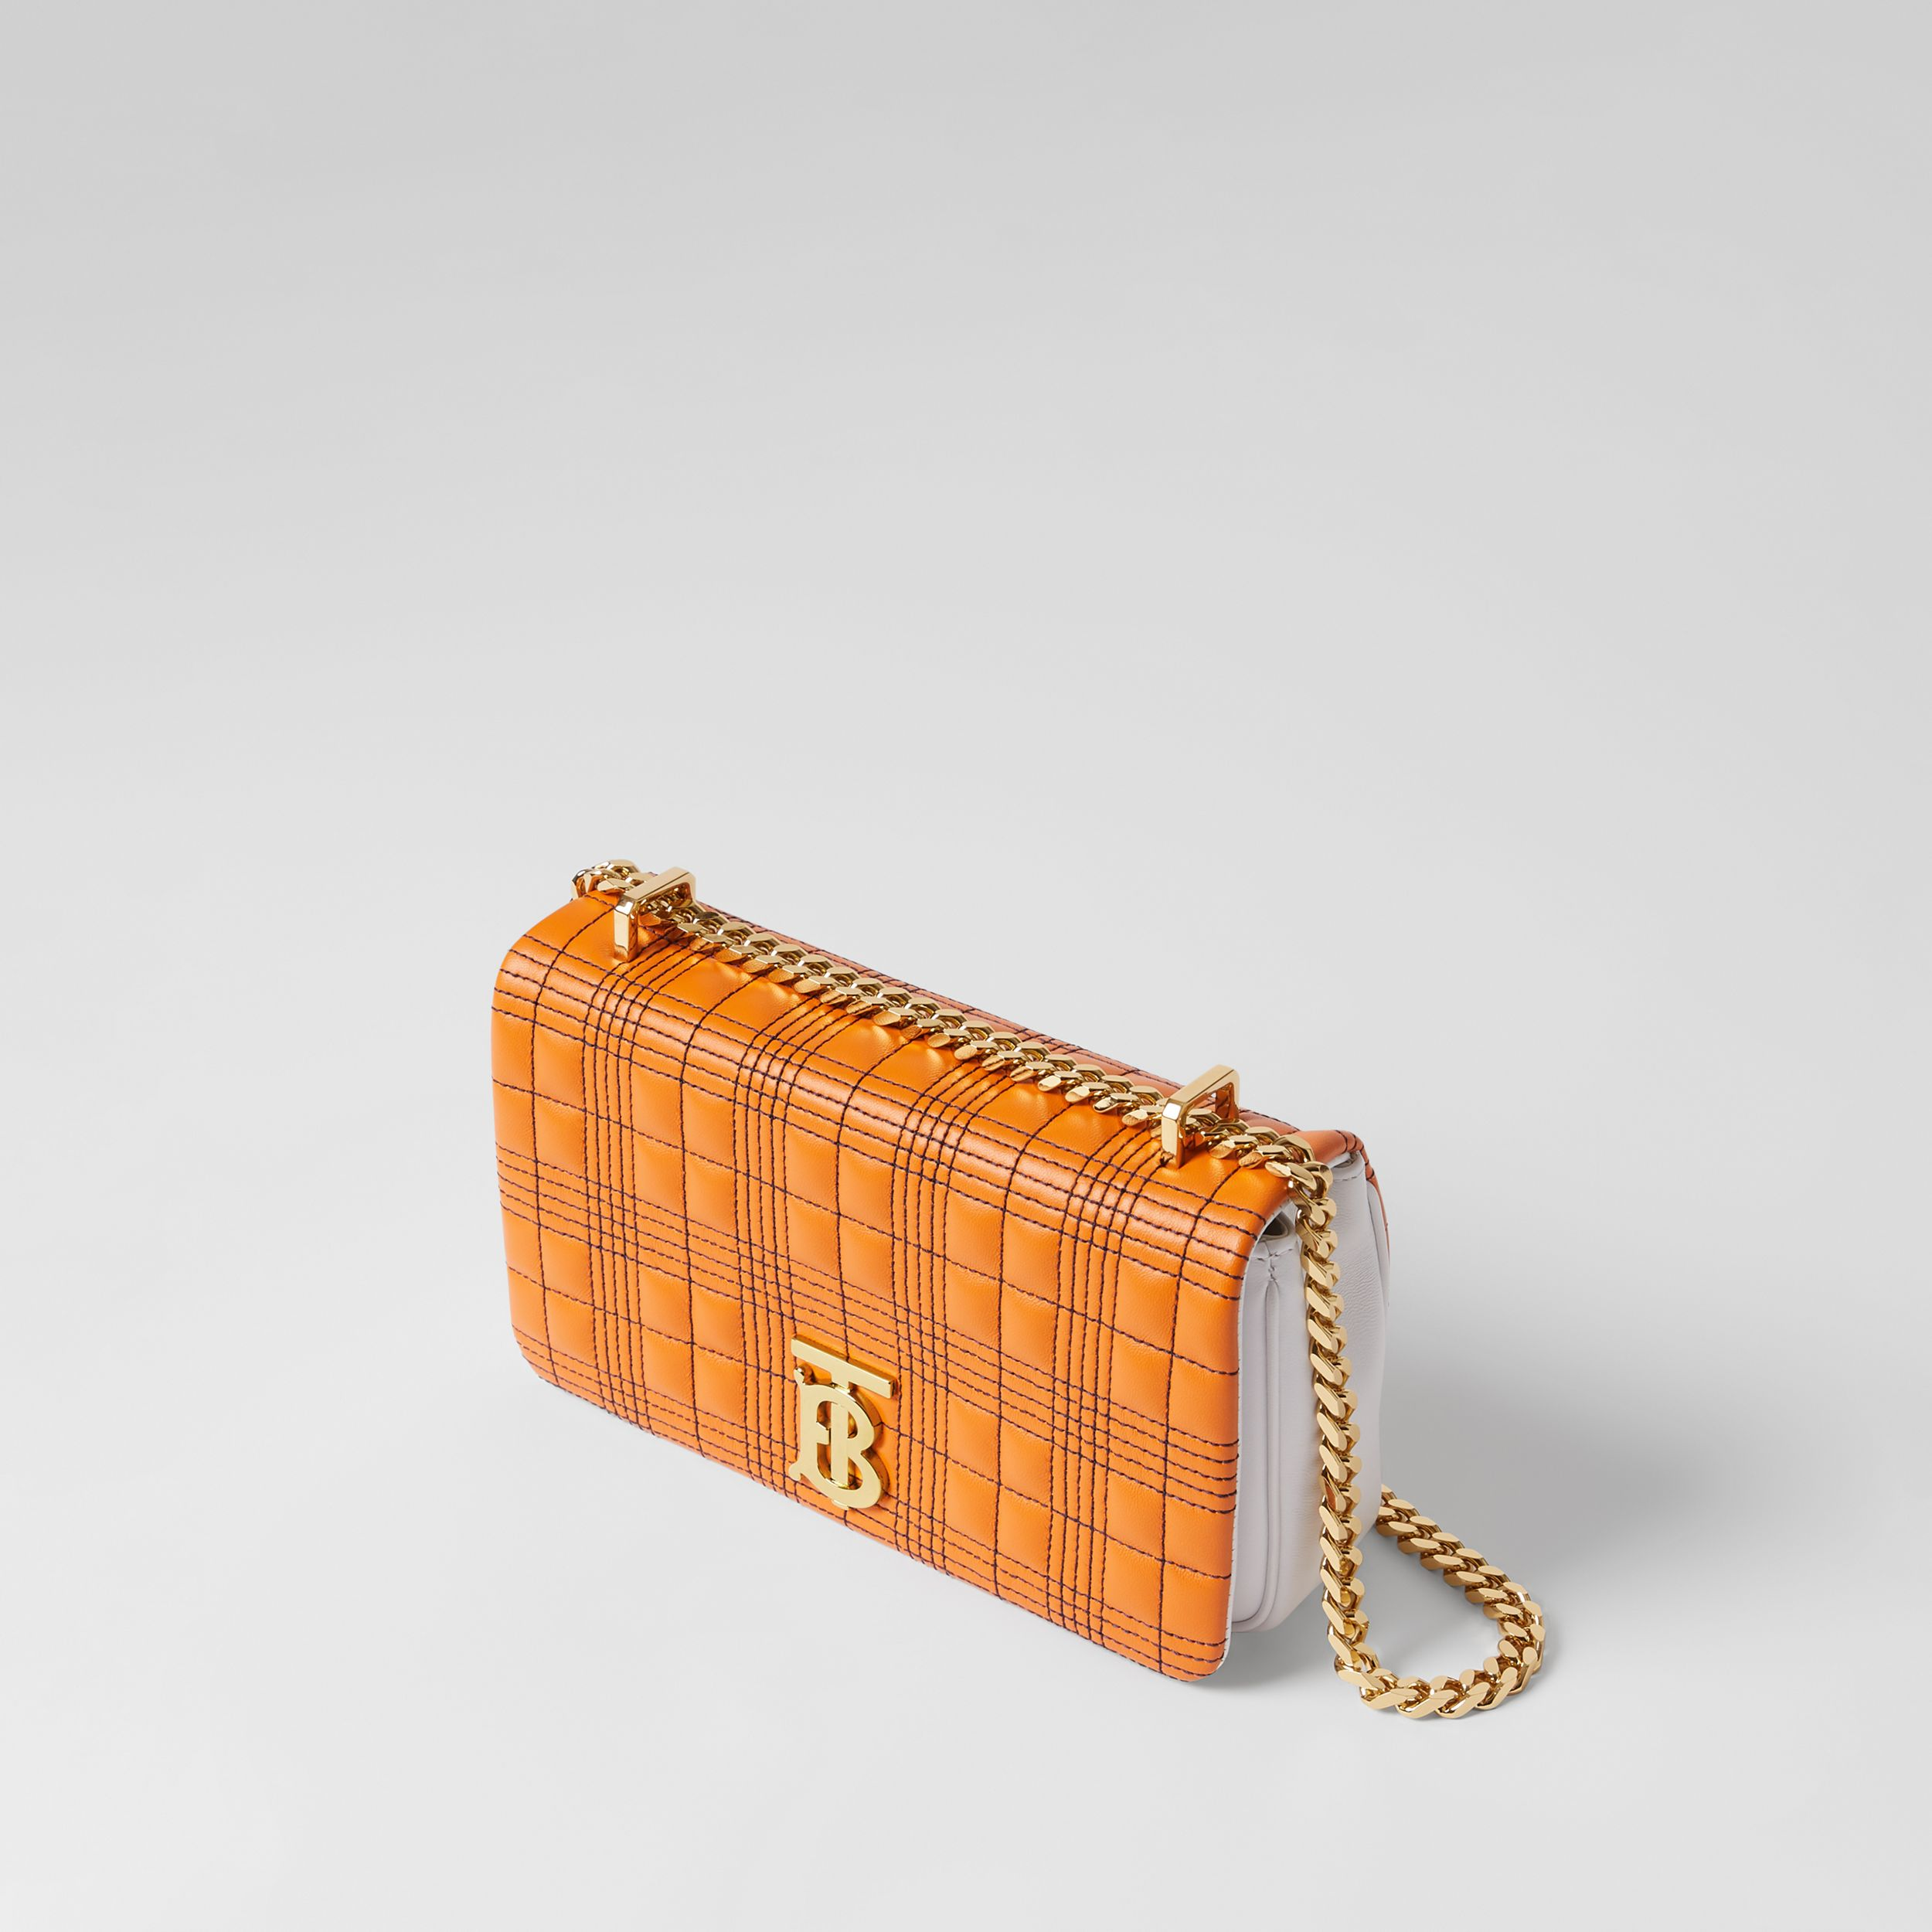 Small Quilted Tri-tone Lambskin Lola Bag in Orange/white - Women | Burberry - 4